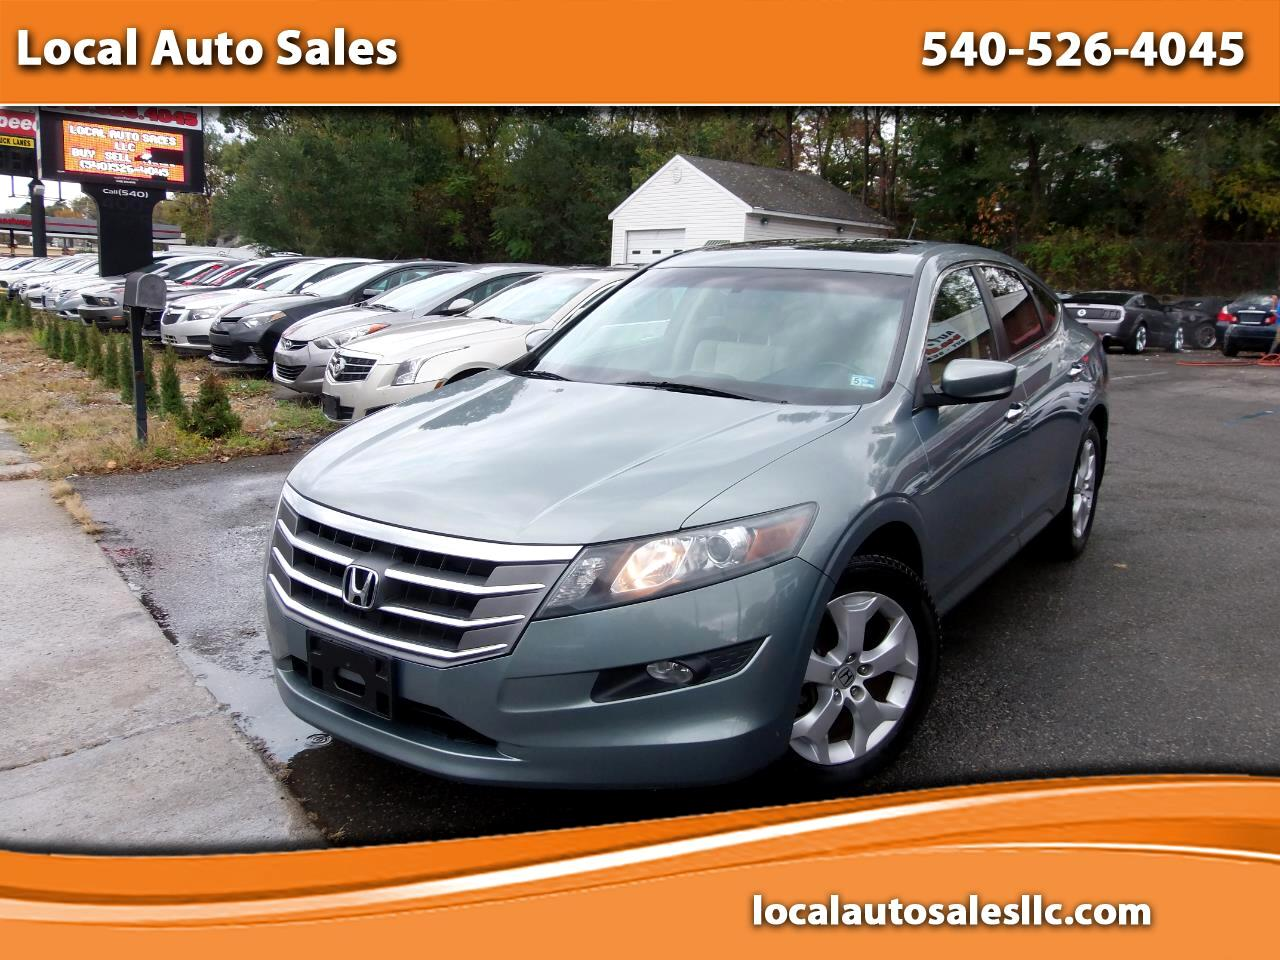 Honda Accord Crosstour EX-L 4WD 5-Spd AT 2010